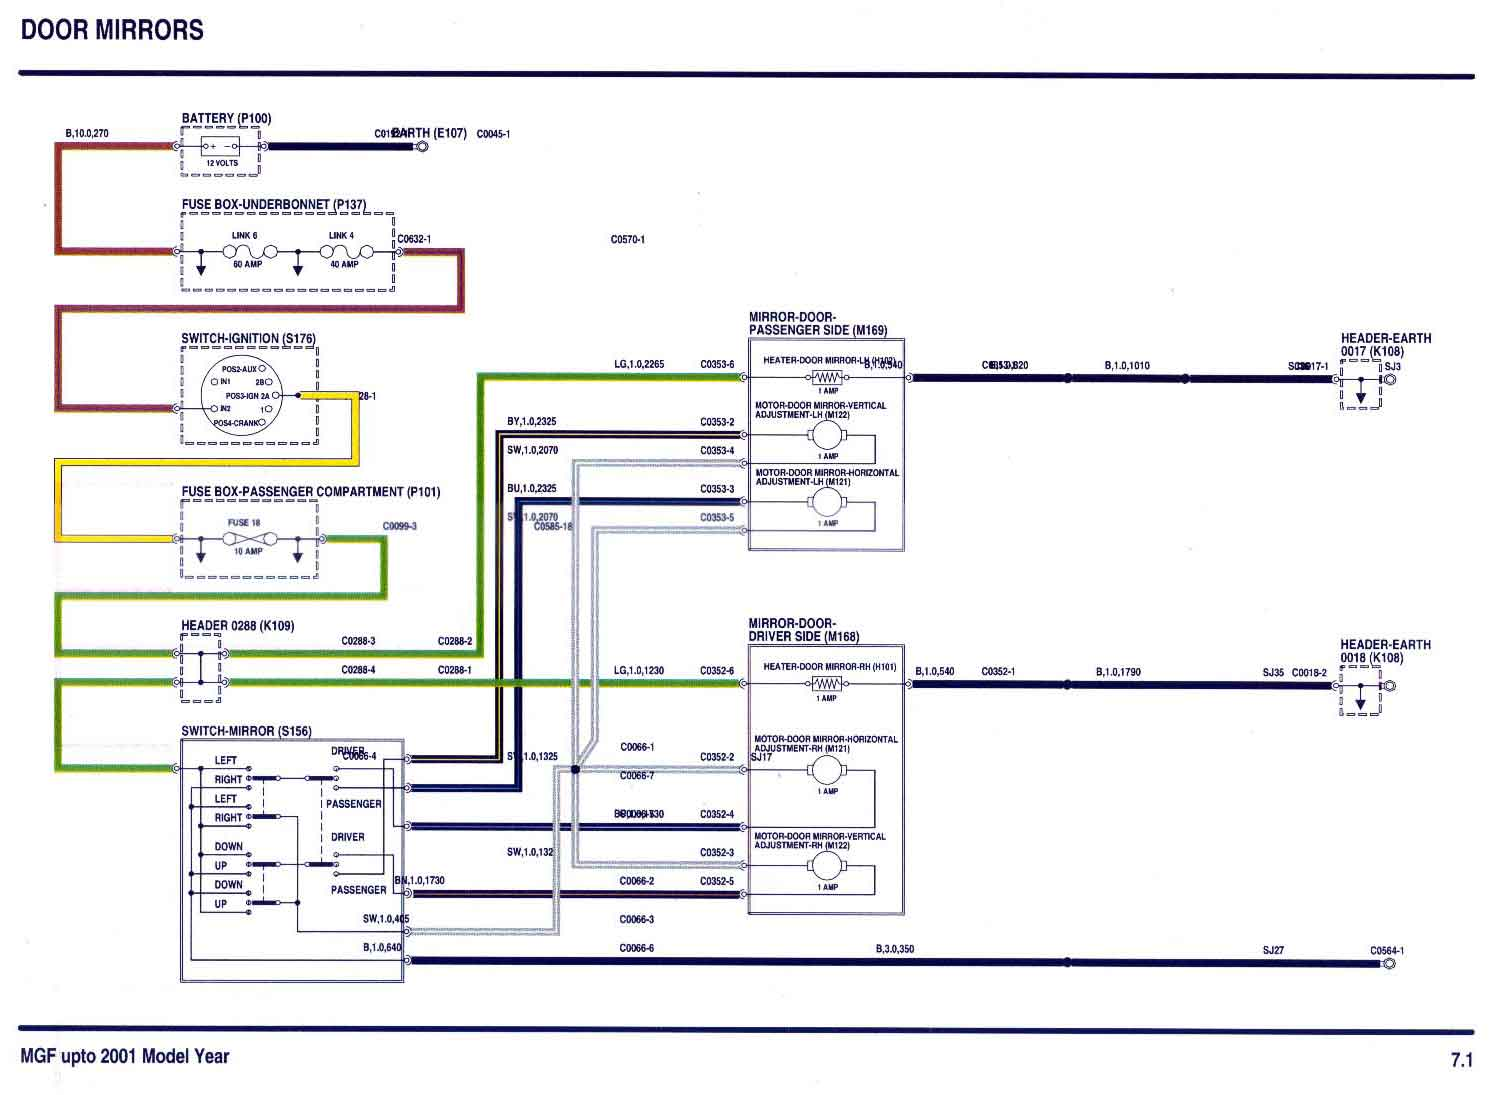 Mirrors electrical circuits rover 45 wiring diagram at n-0.co